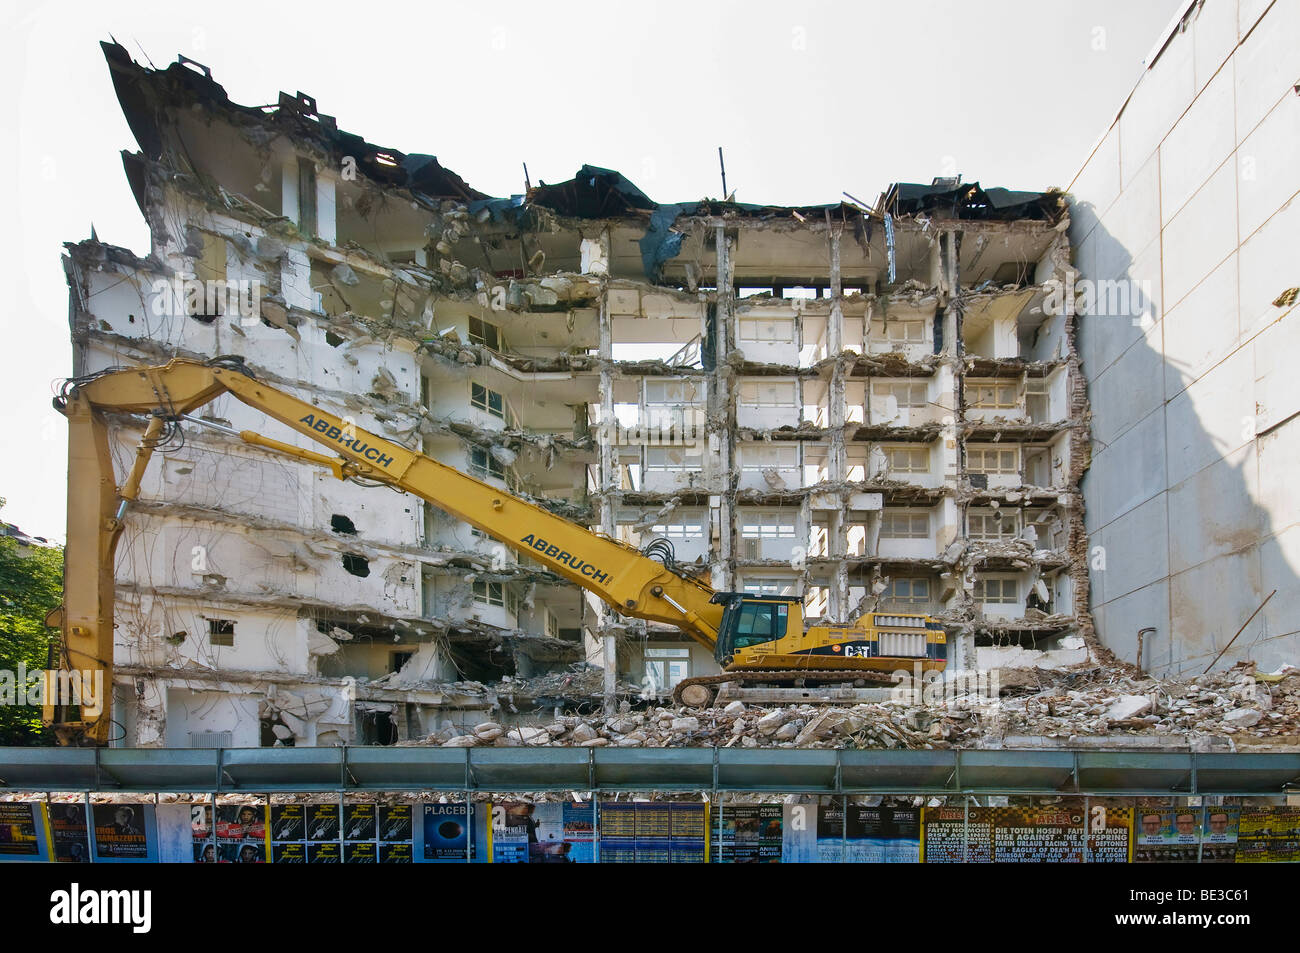 Demolition of a house, large mechanical digger, North Rhine-Westphalia, Germany, Europe - Stock Image